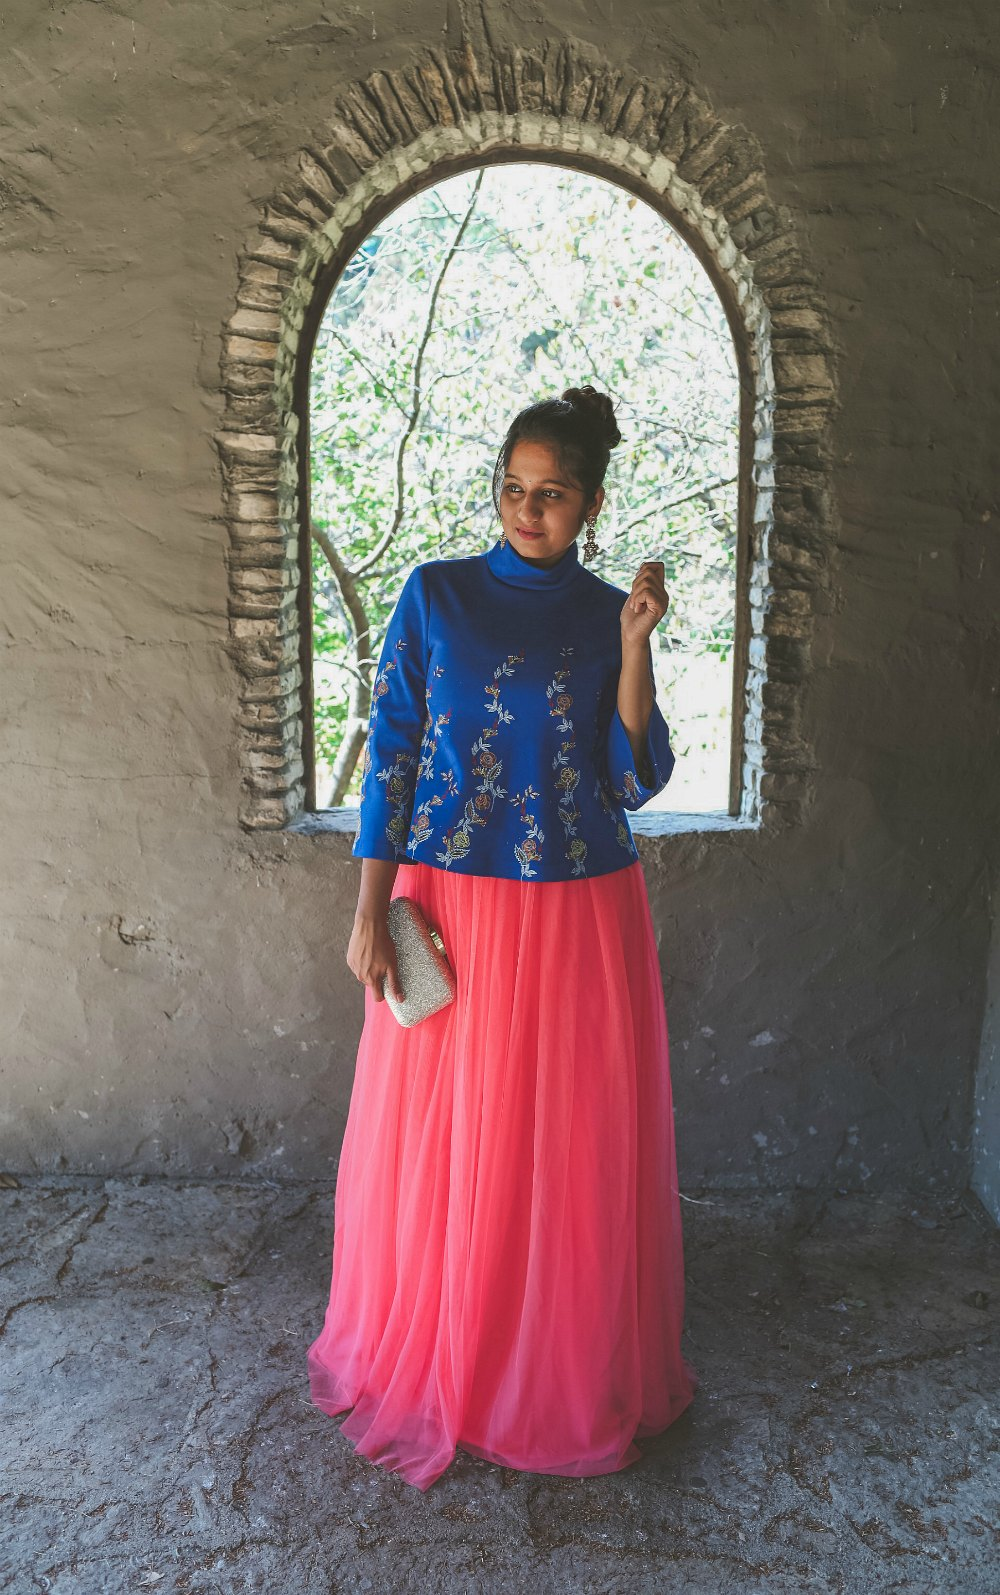 Lifestyle Blogger Surekha of Dreaming Loud sharing Diwali Indian fusion outfit with tulle skirt2| Diwali outfit with an ASOS pink tulle maxi skirt styled by popular Ohio modest fashion blogger, Dreaming Loud